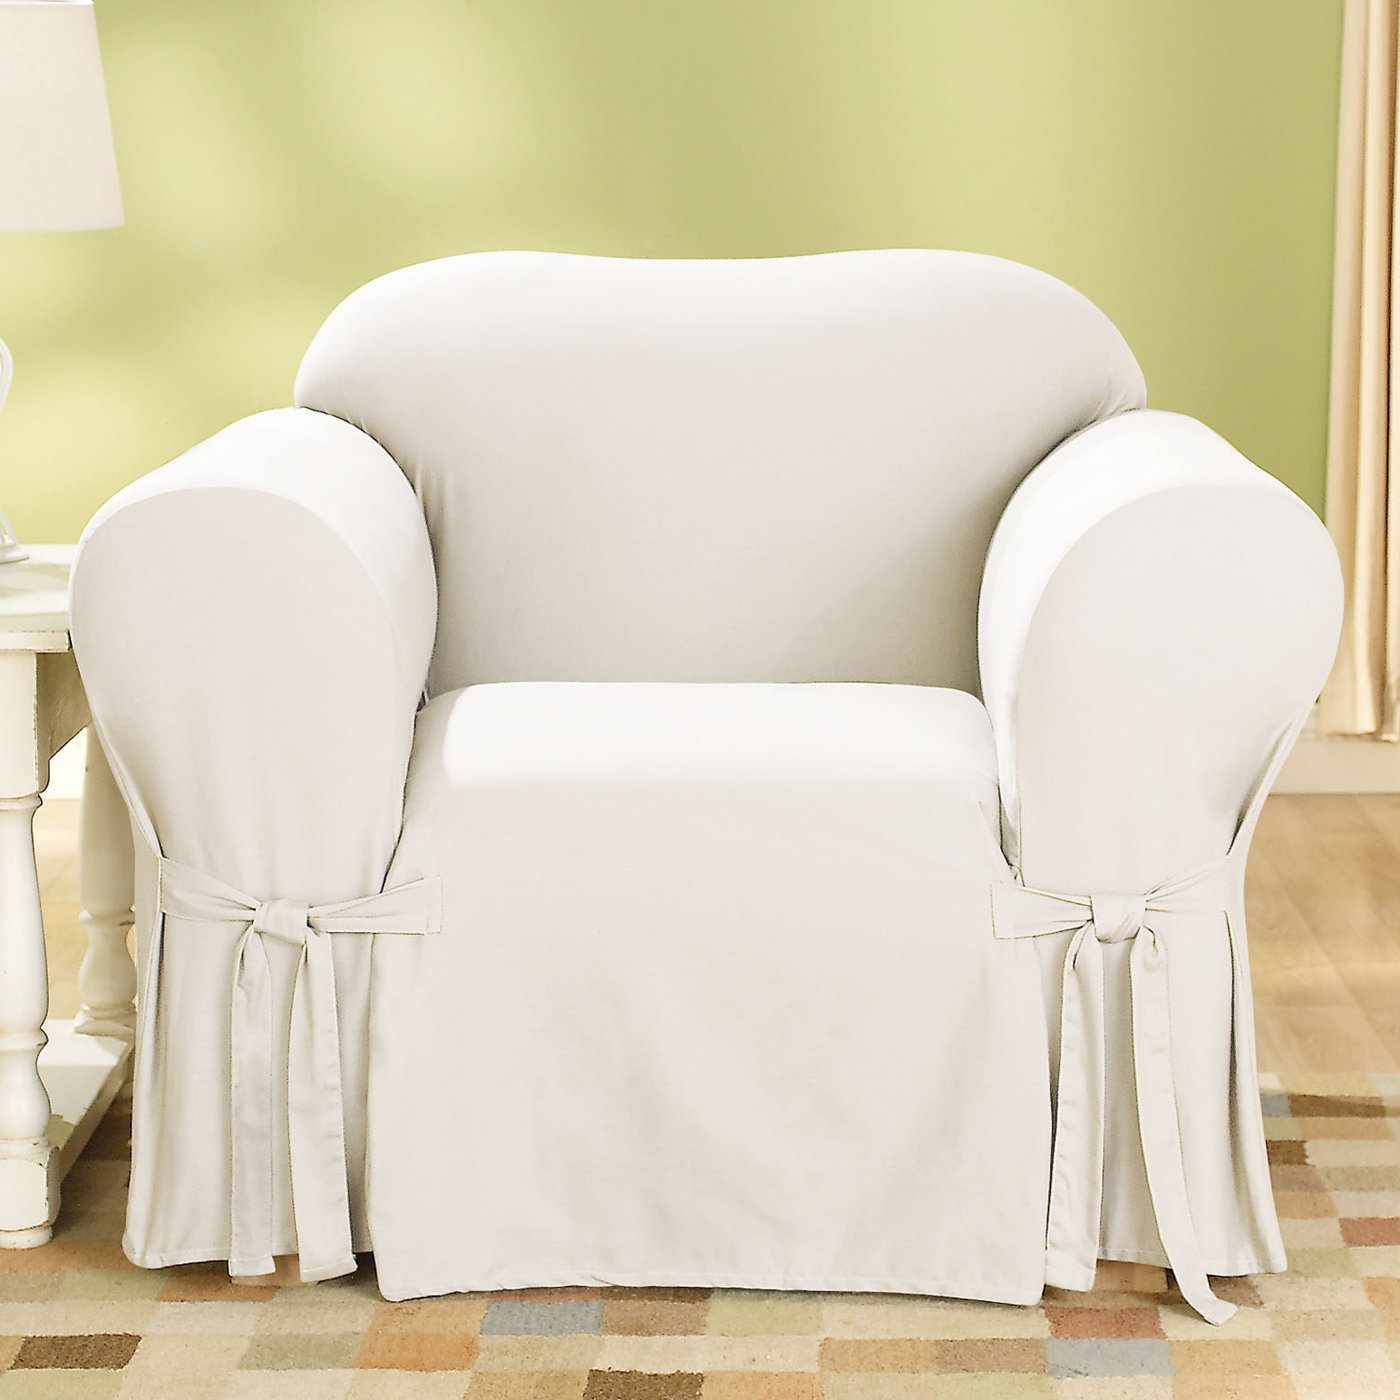 Positive Match Slipcover Chair. Sure Fit Slipcover Chair